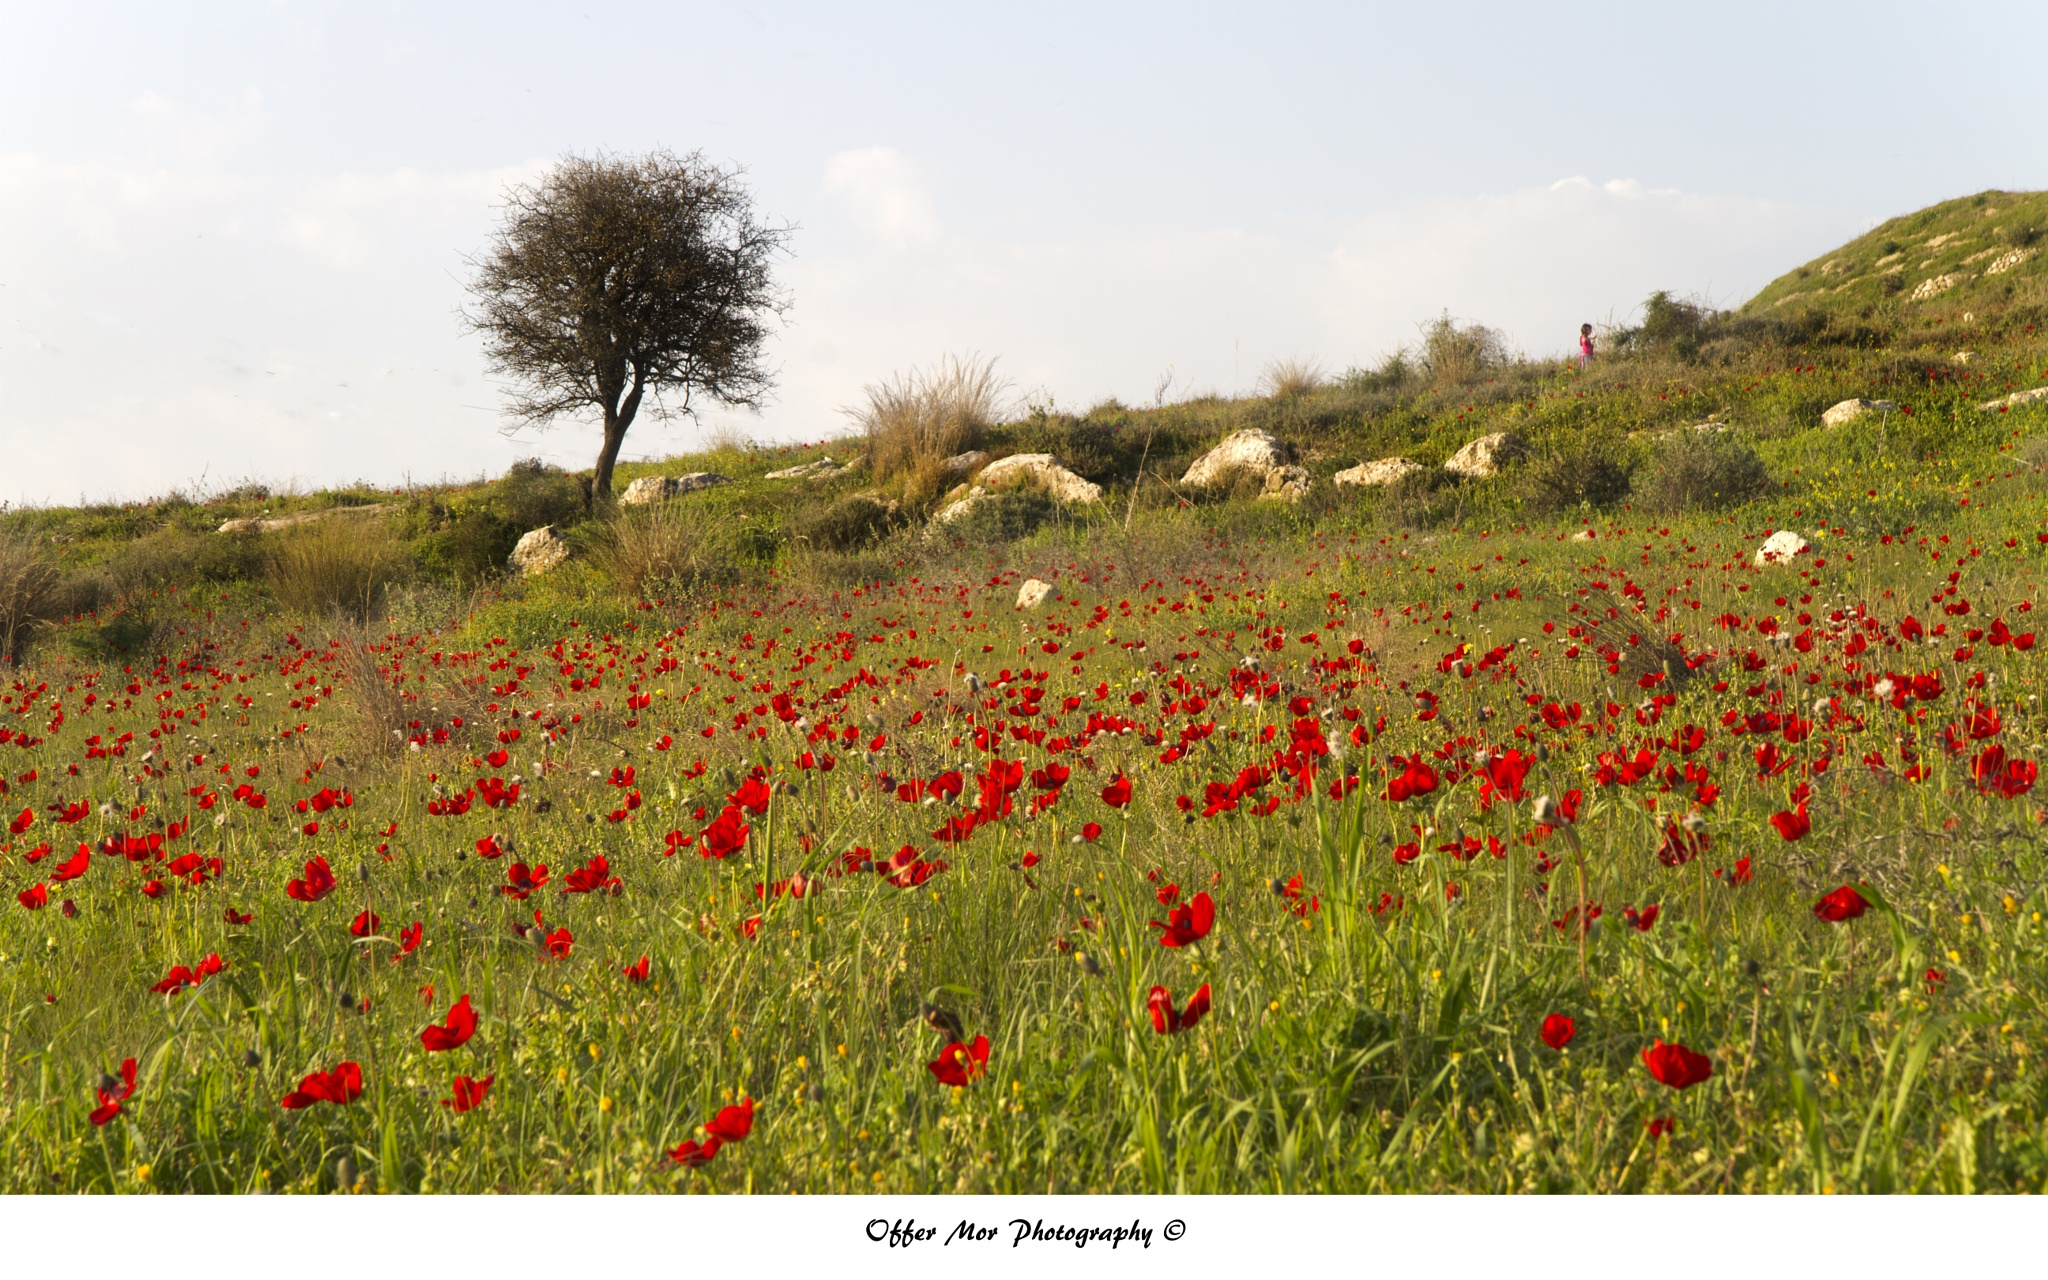 The Girl in the Poppy field by offermor